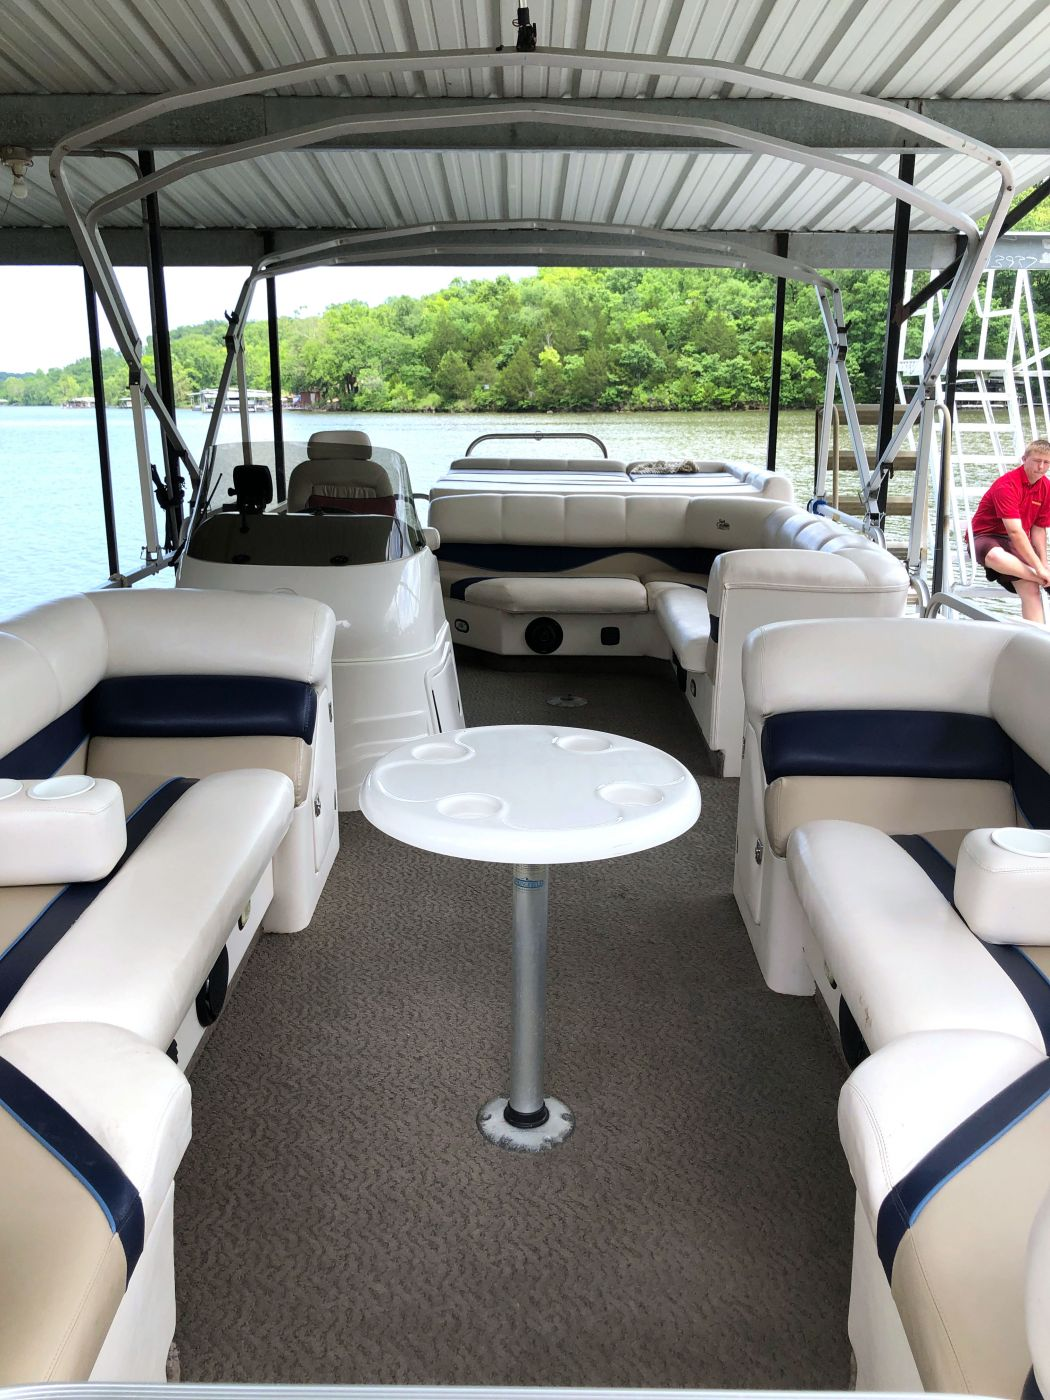 Pontoon Boat Cleaning